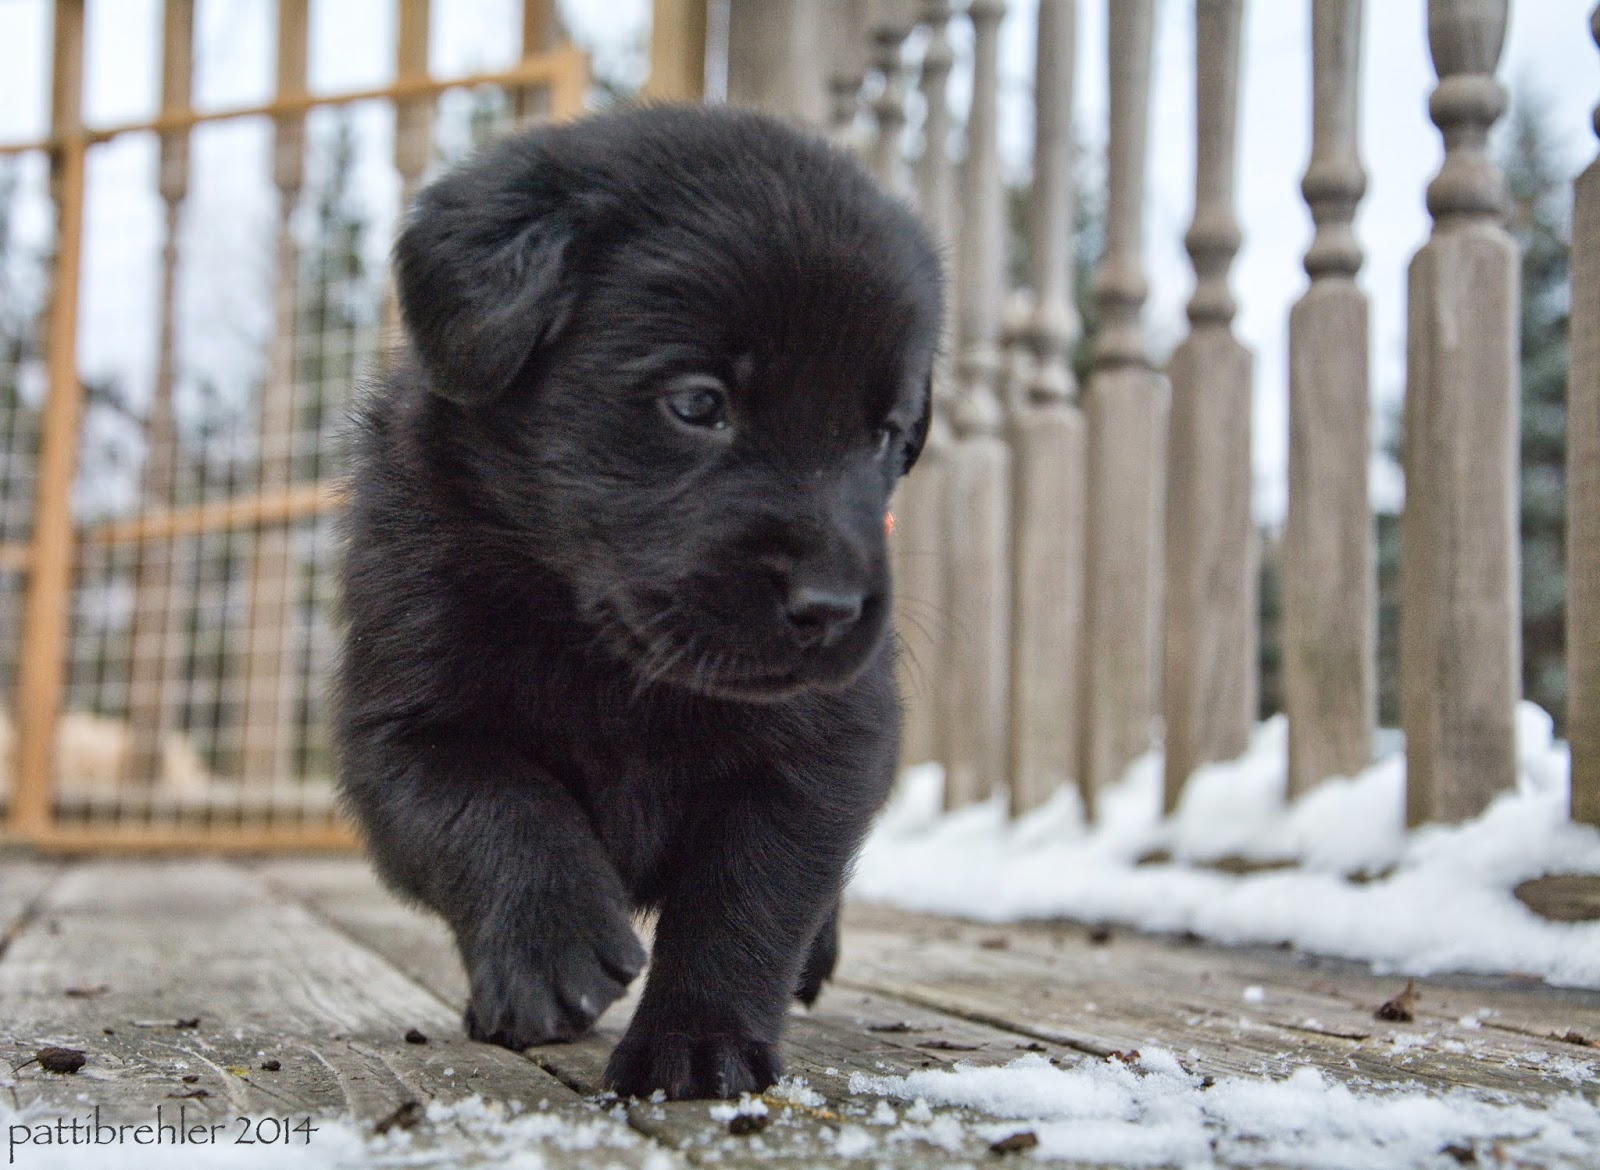 A small black lab/golden mix puppy is walking toward the camera, the puppy is looking away to the right. The puppy is walking on a wooden deck that has some snow on it. Behind the puppy are rungs of a railing.